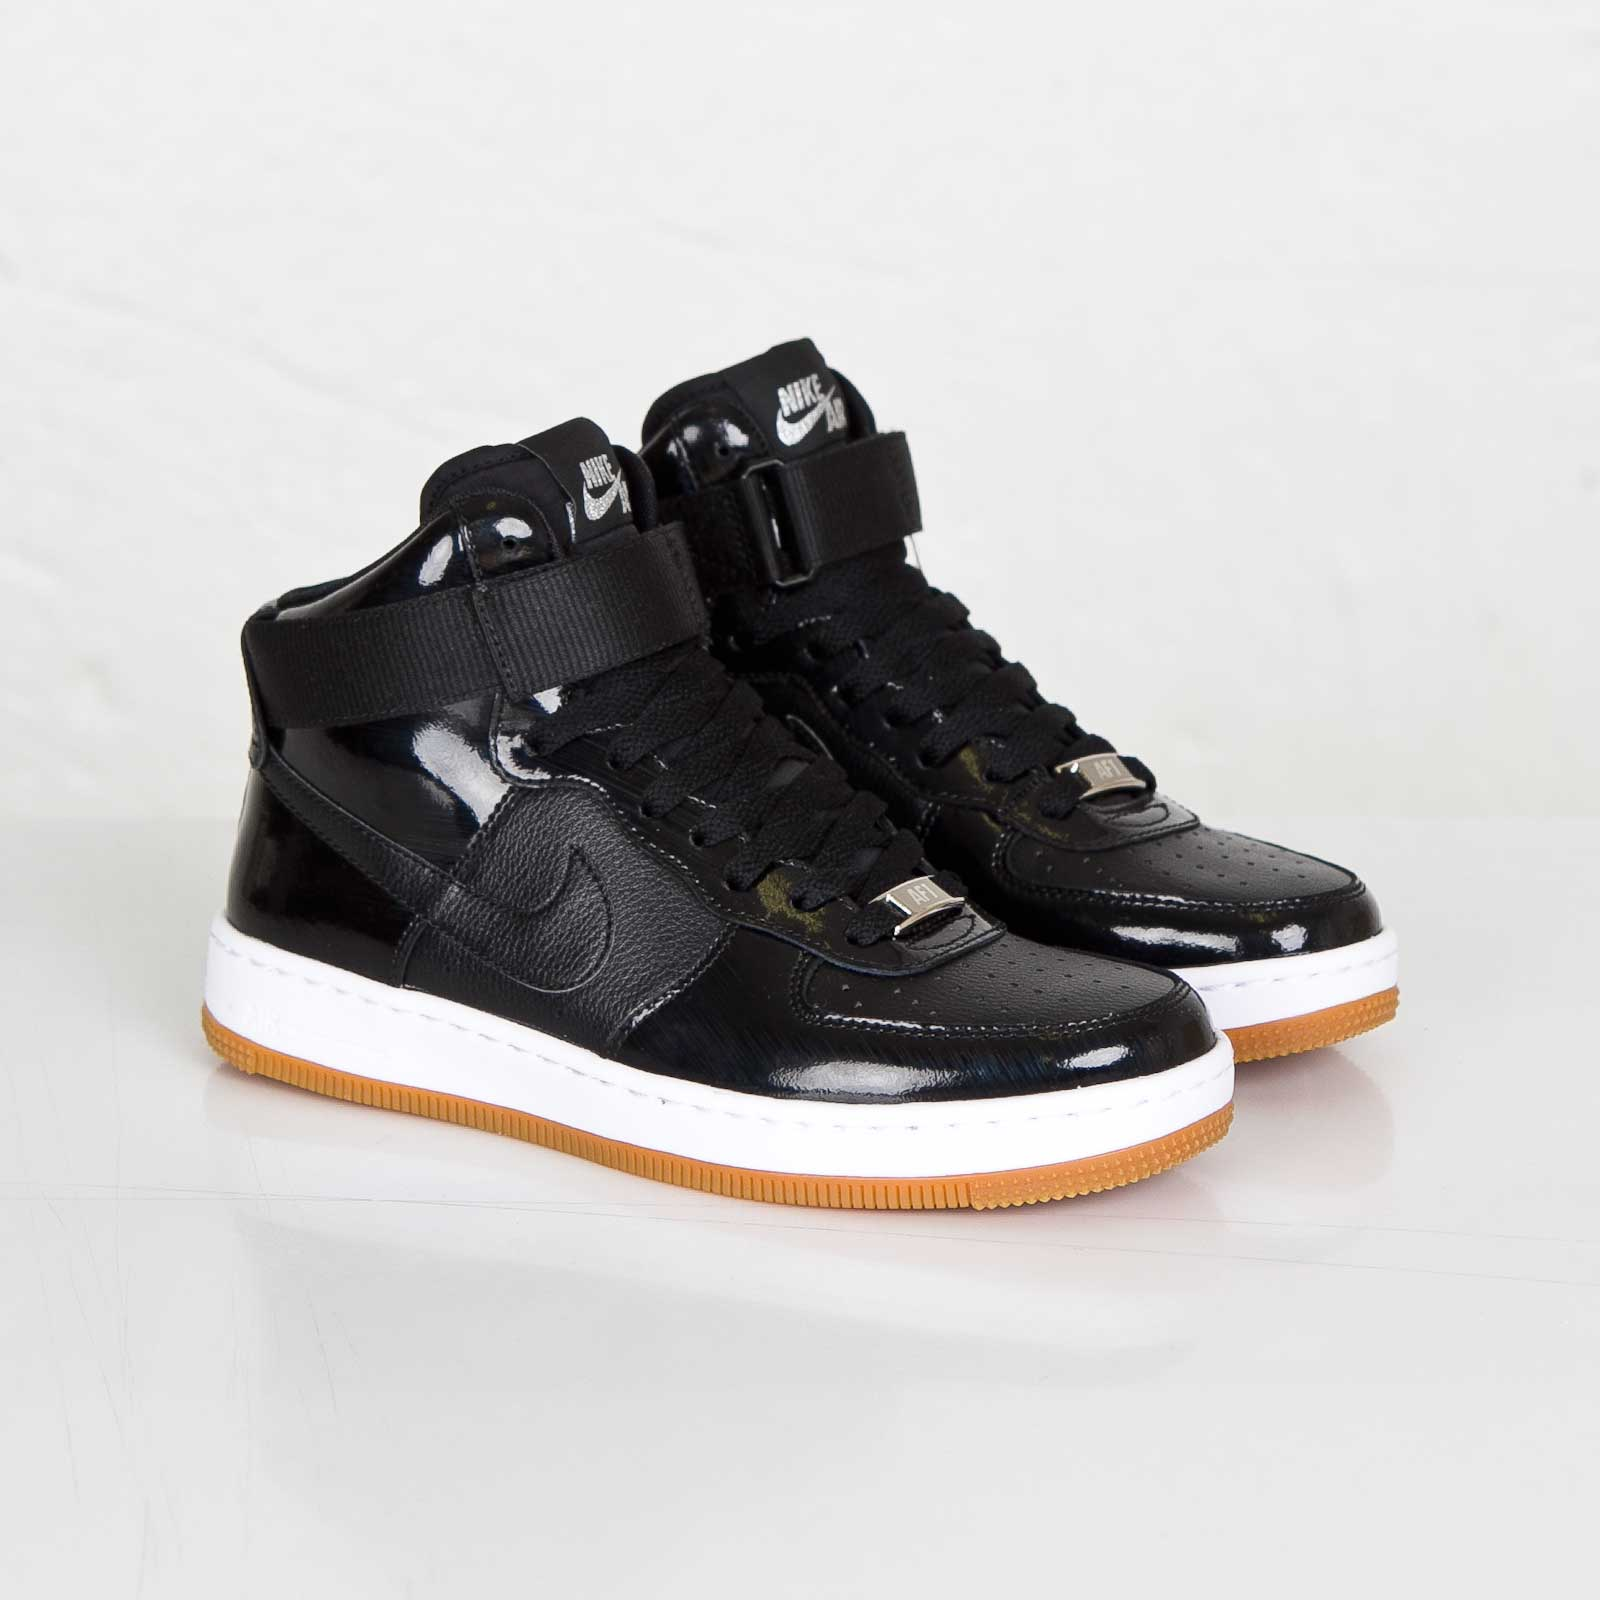 ... black-white 817420- Nike Wmns Air Force 1 Ultra Force Mid . ... 264818112